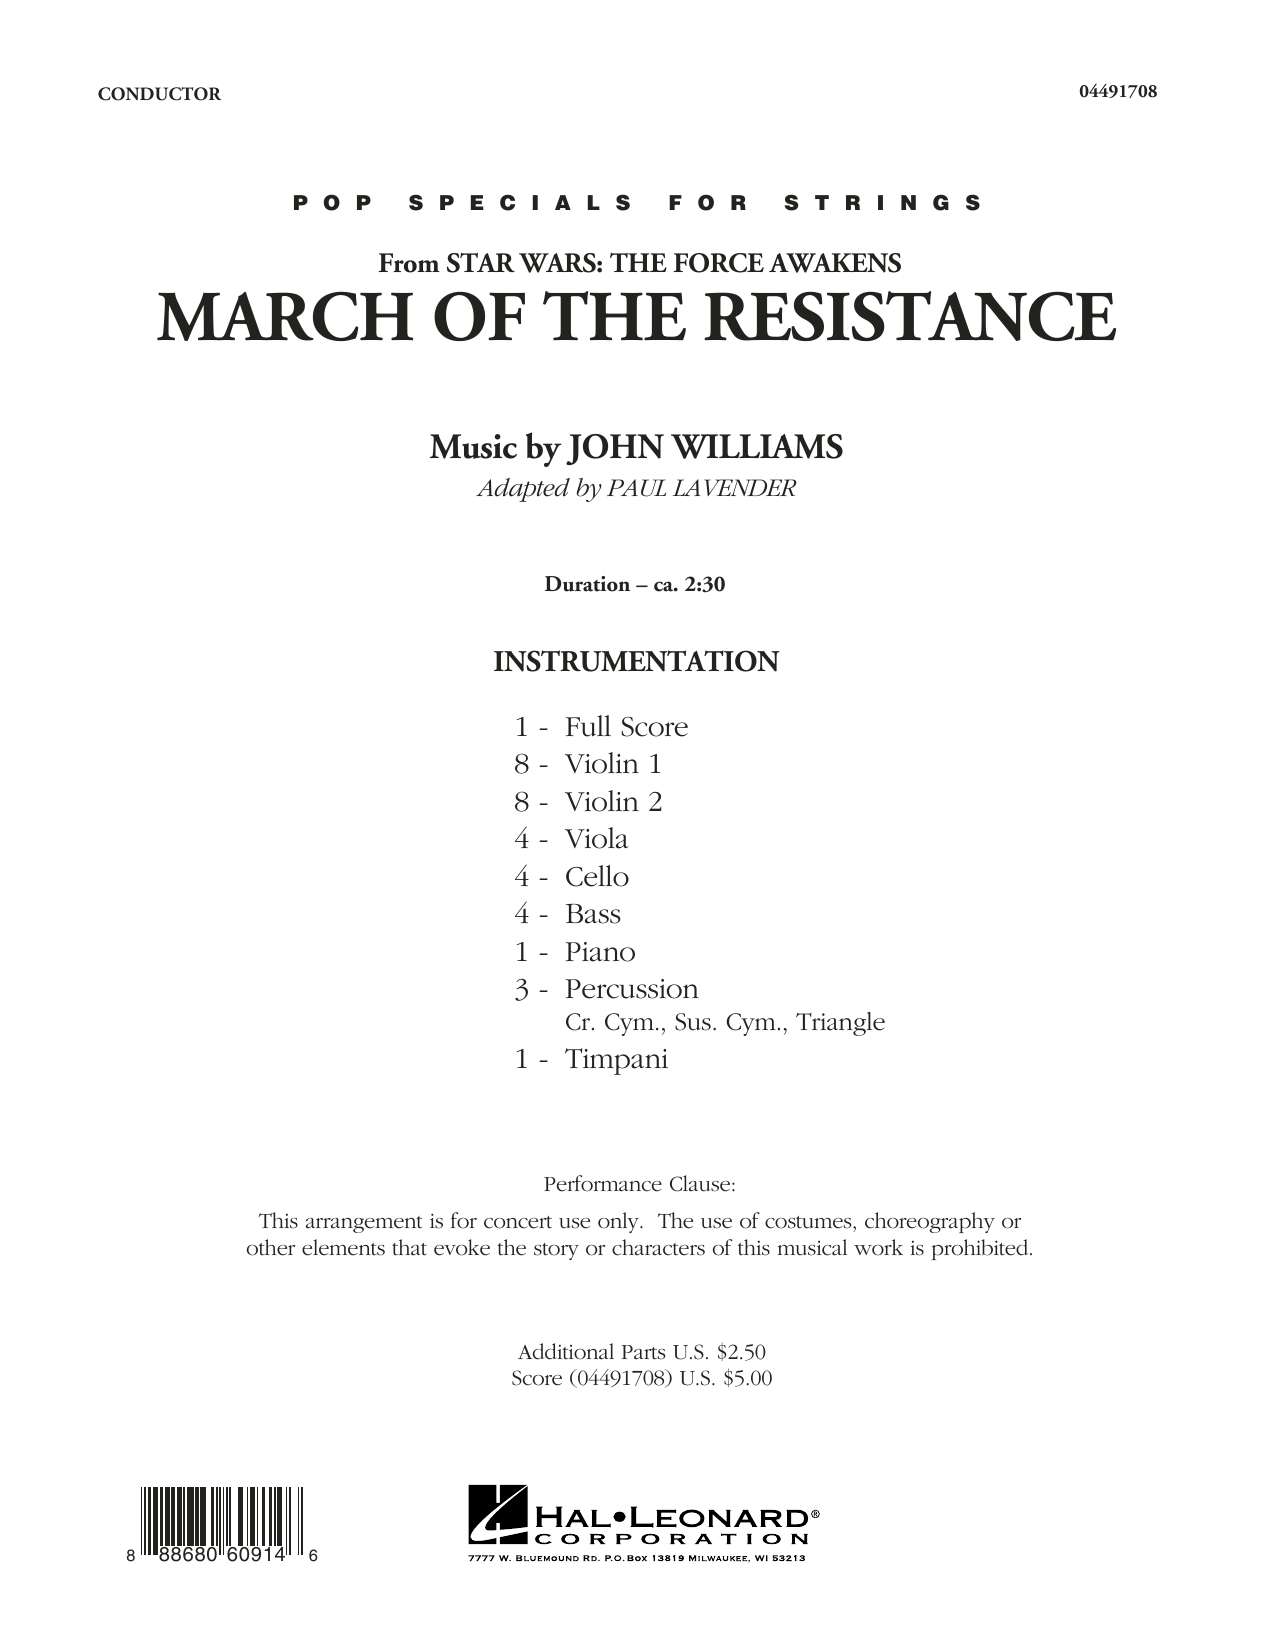 John Williams - March of the Resistance (from Star Wars: The Force Awakens) - Conductor Score (Full Score)